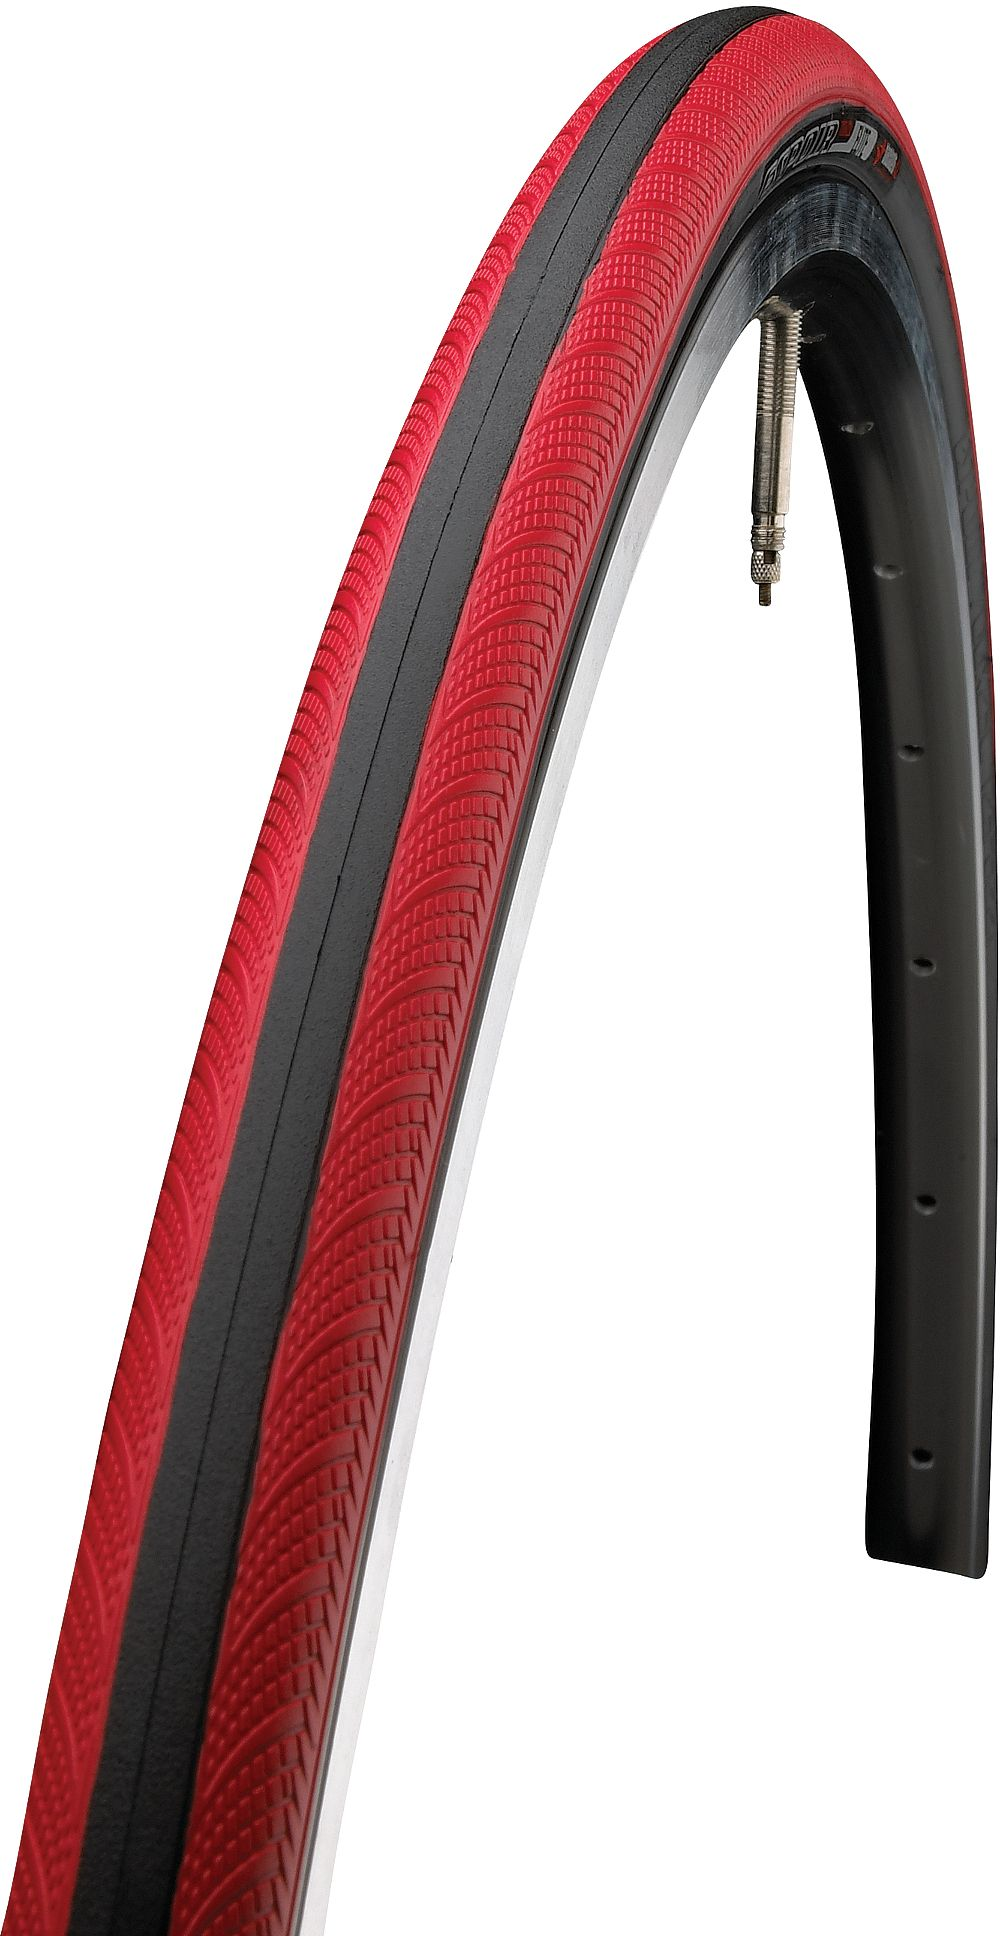 Specialized Espoir Elite Race Tyre Black/red 700x23c | Tyres